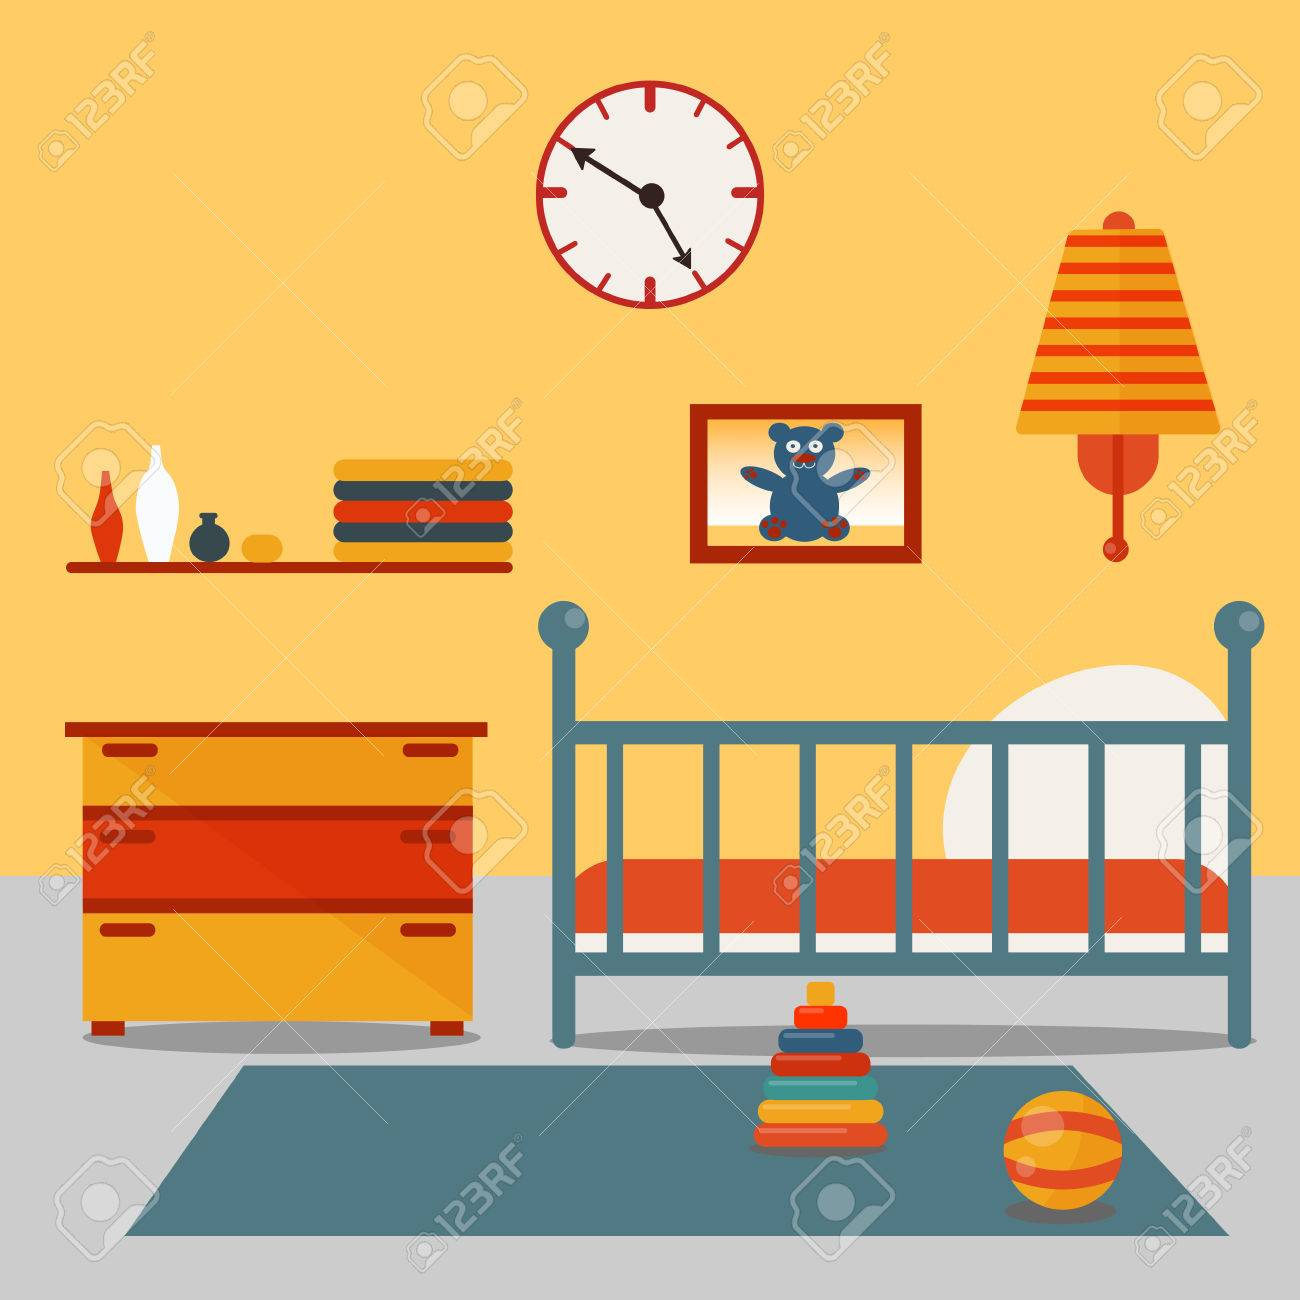 Image of: Children Bedroom Interior Child Furniture And Toys Vector Illustration Royalty Free Cliparts Vectors And Stock Illustration Image 55573980